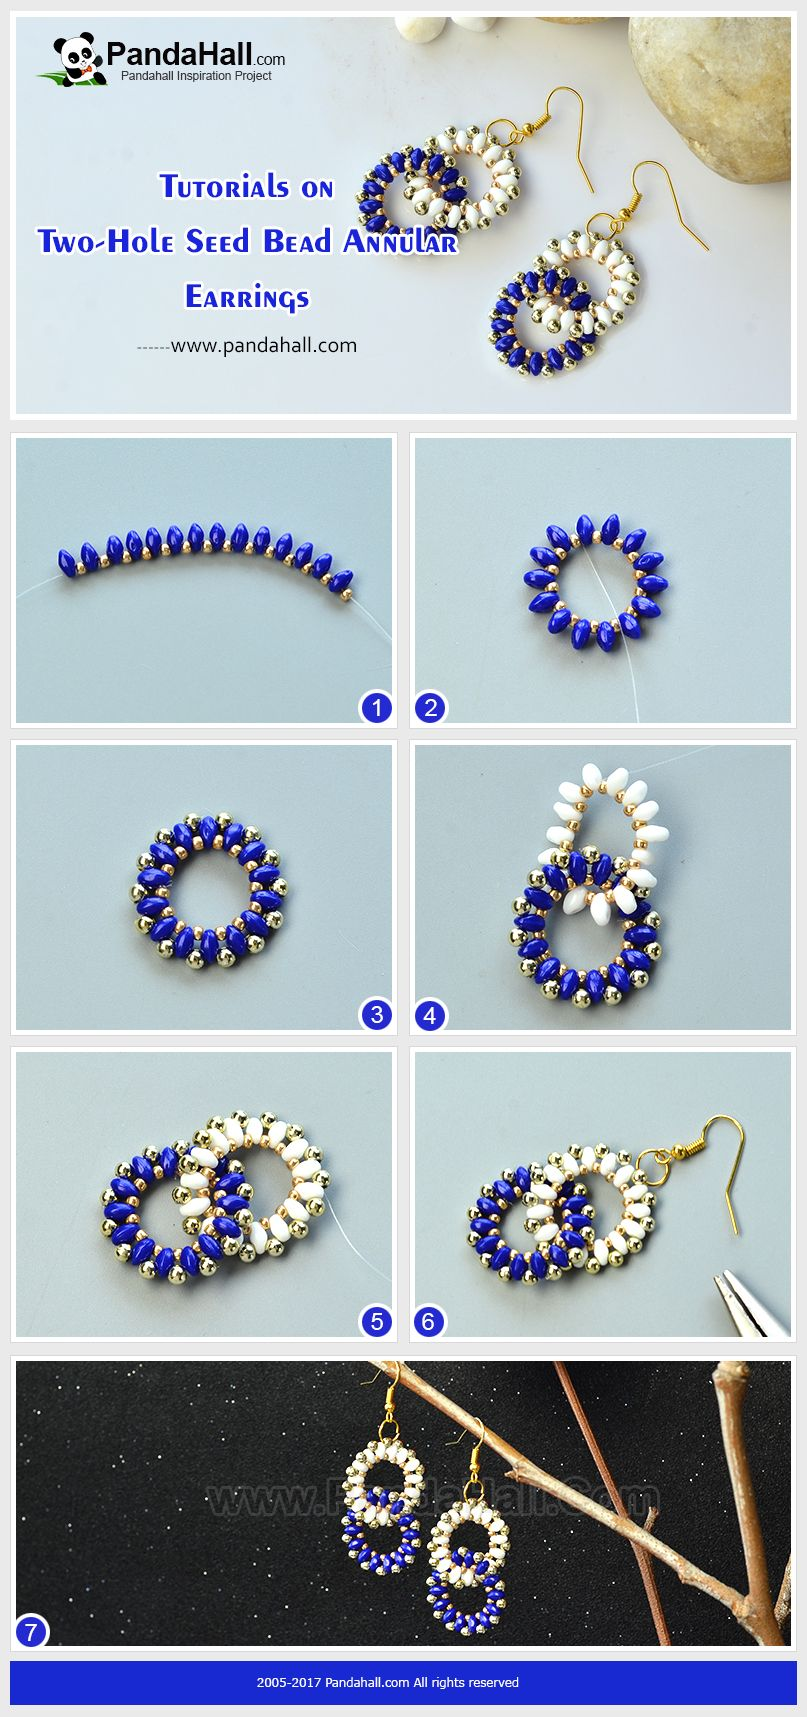 How To Make Two Hole Seed Bead Annular Earrings The Pair Of